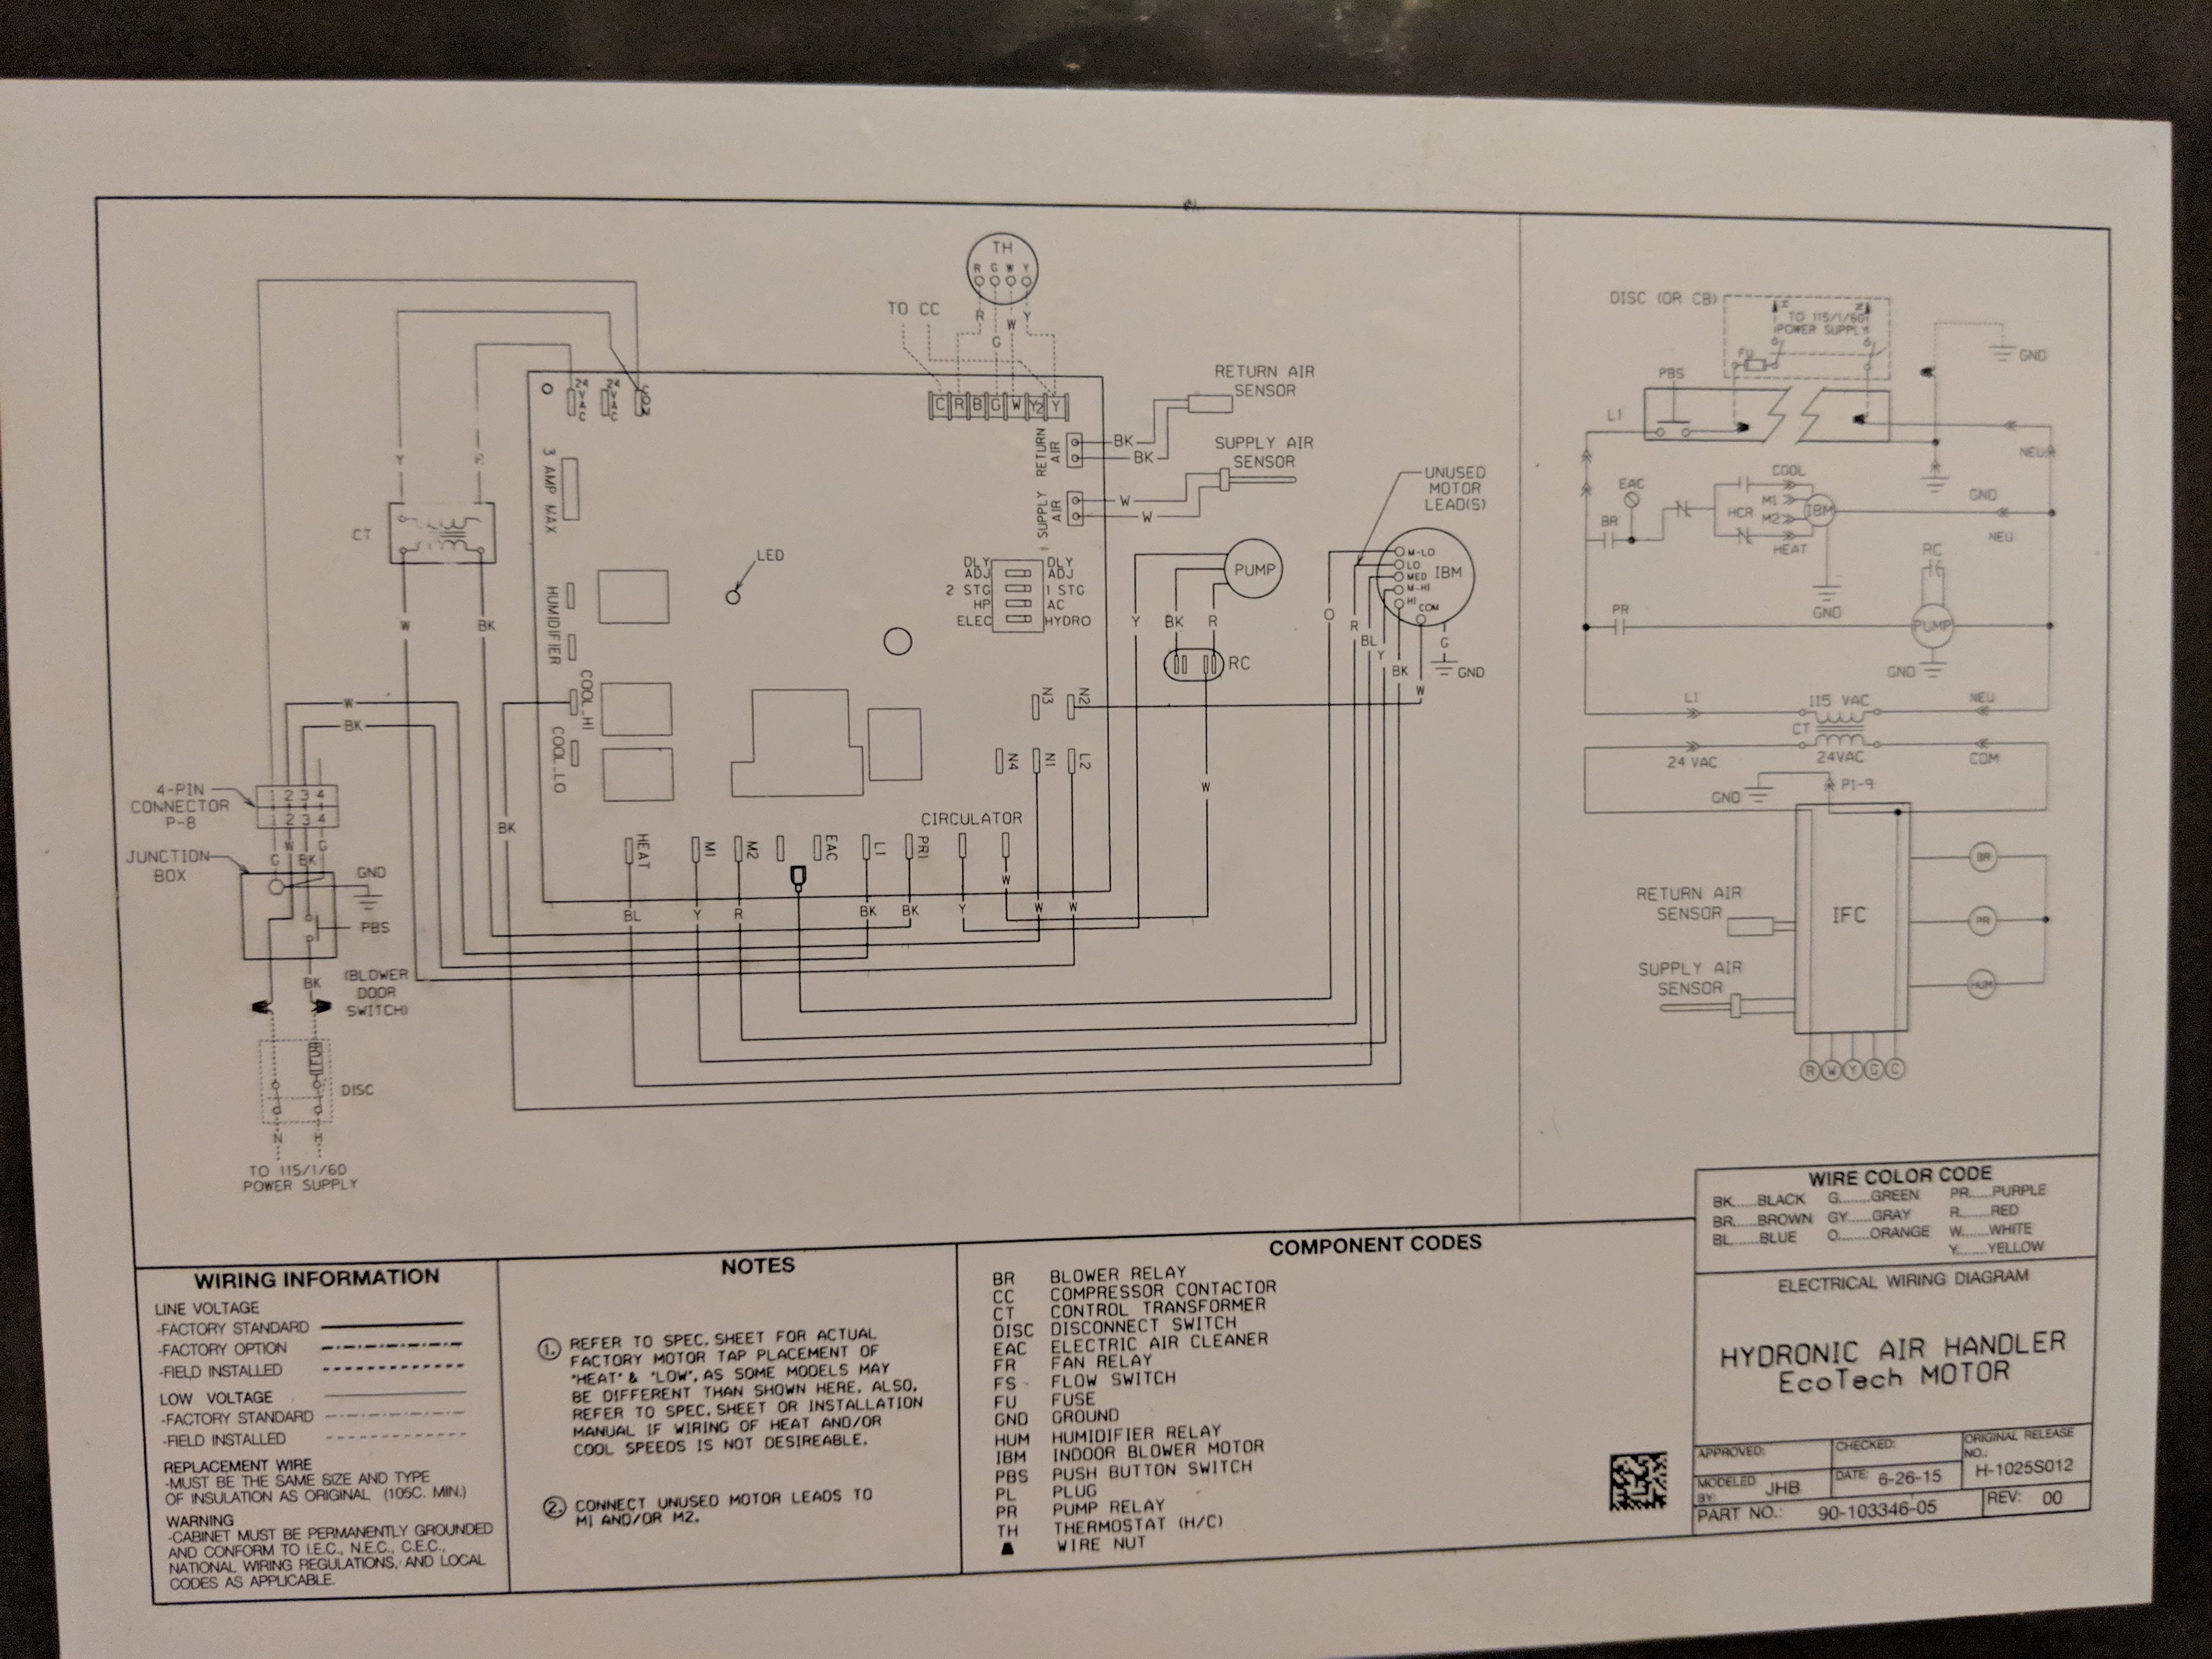 I'm installing a Navien combi boiler (NCB-180) with a Rheem hydronic air  handler (RWIT). The thermostat is a Nest (2ndJustAnswer